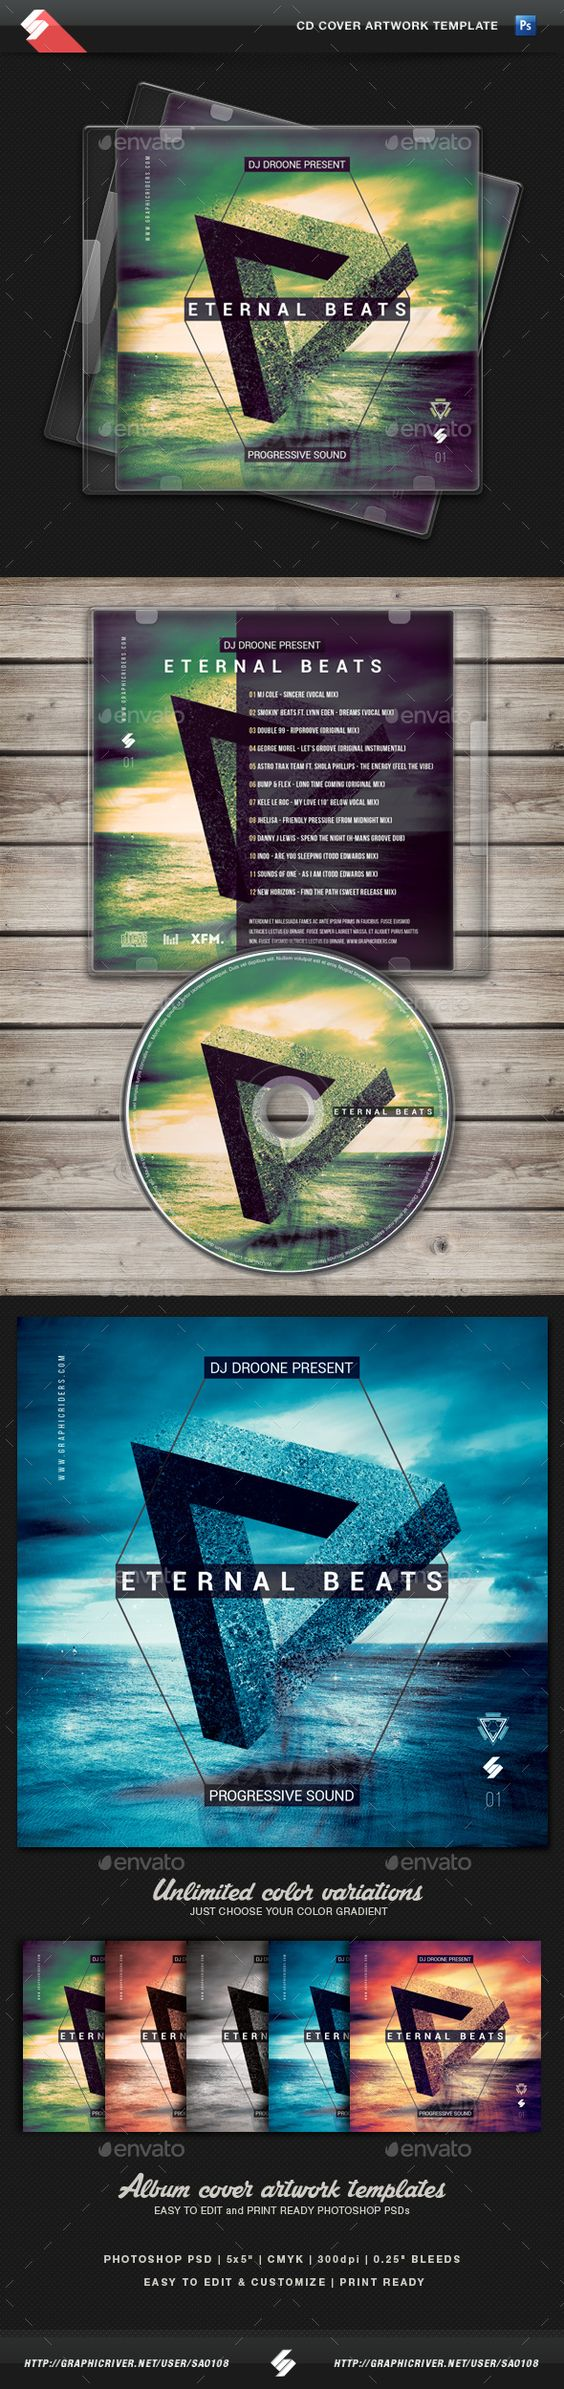 Eternal Beats - Progressive Sound CD Cover Template PSD. Download here: http://graphicriver.net/item/eternal-beats-progressive-sound-cd-cover-template/14427831?ref=ksioks